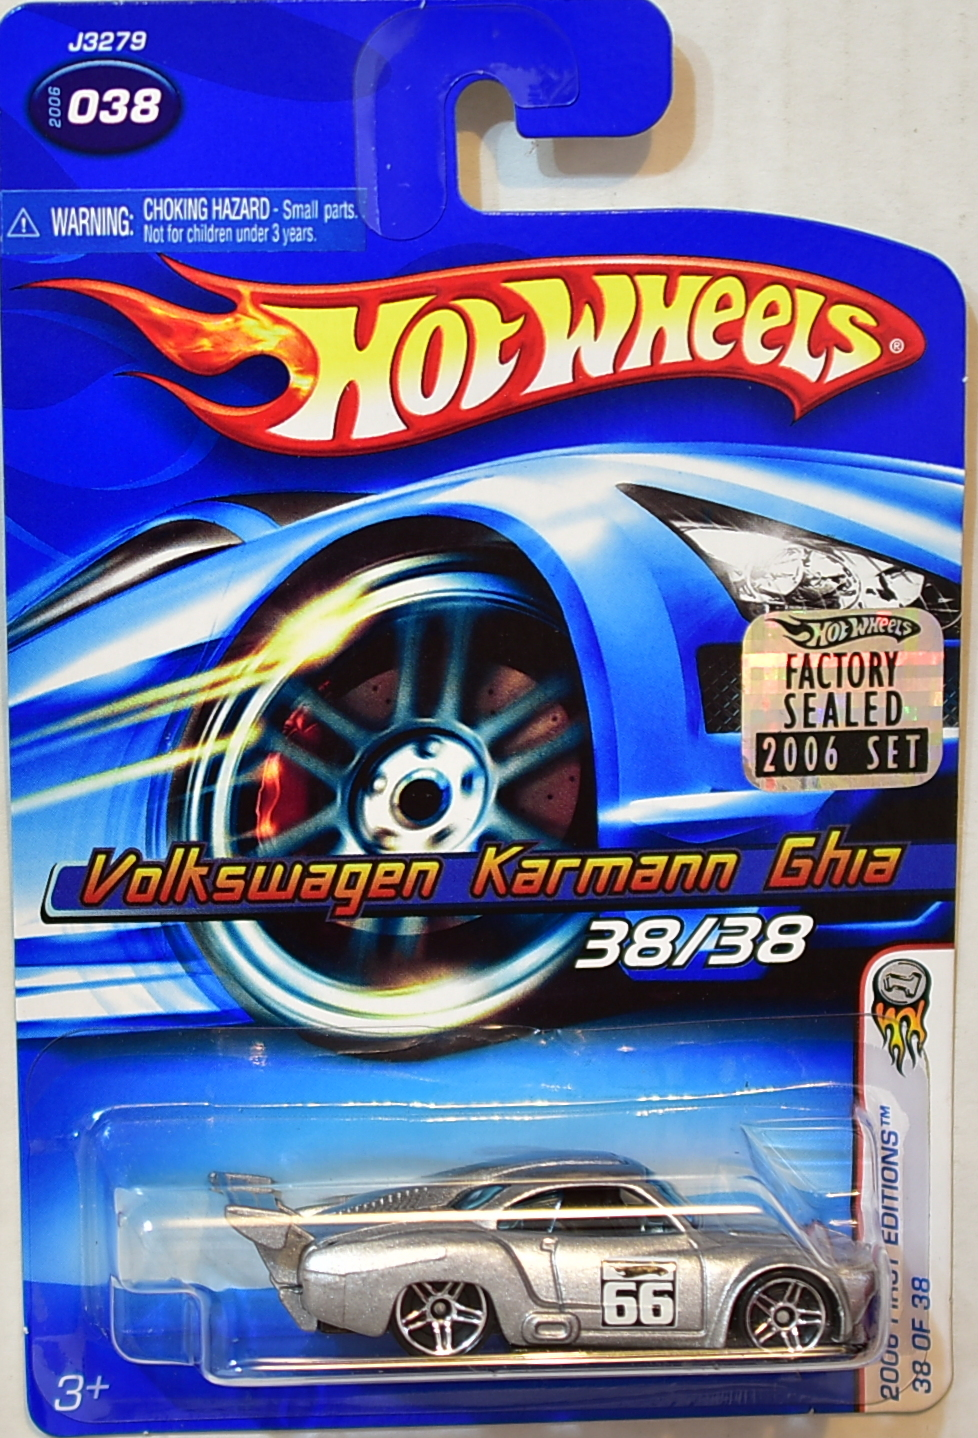 HOT WHEELS 2006 FIRST EDITIONS VOLKSWAGEN KARMANN GHIA #038 FACTORY SEALED